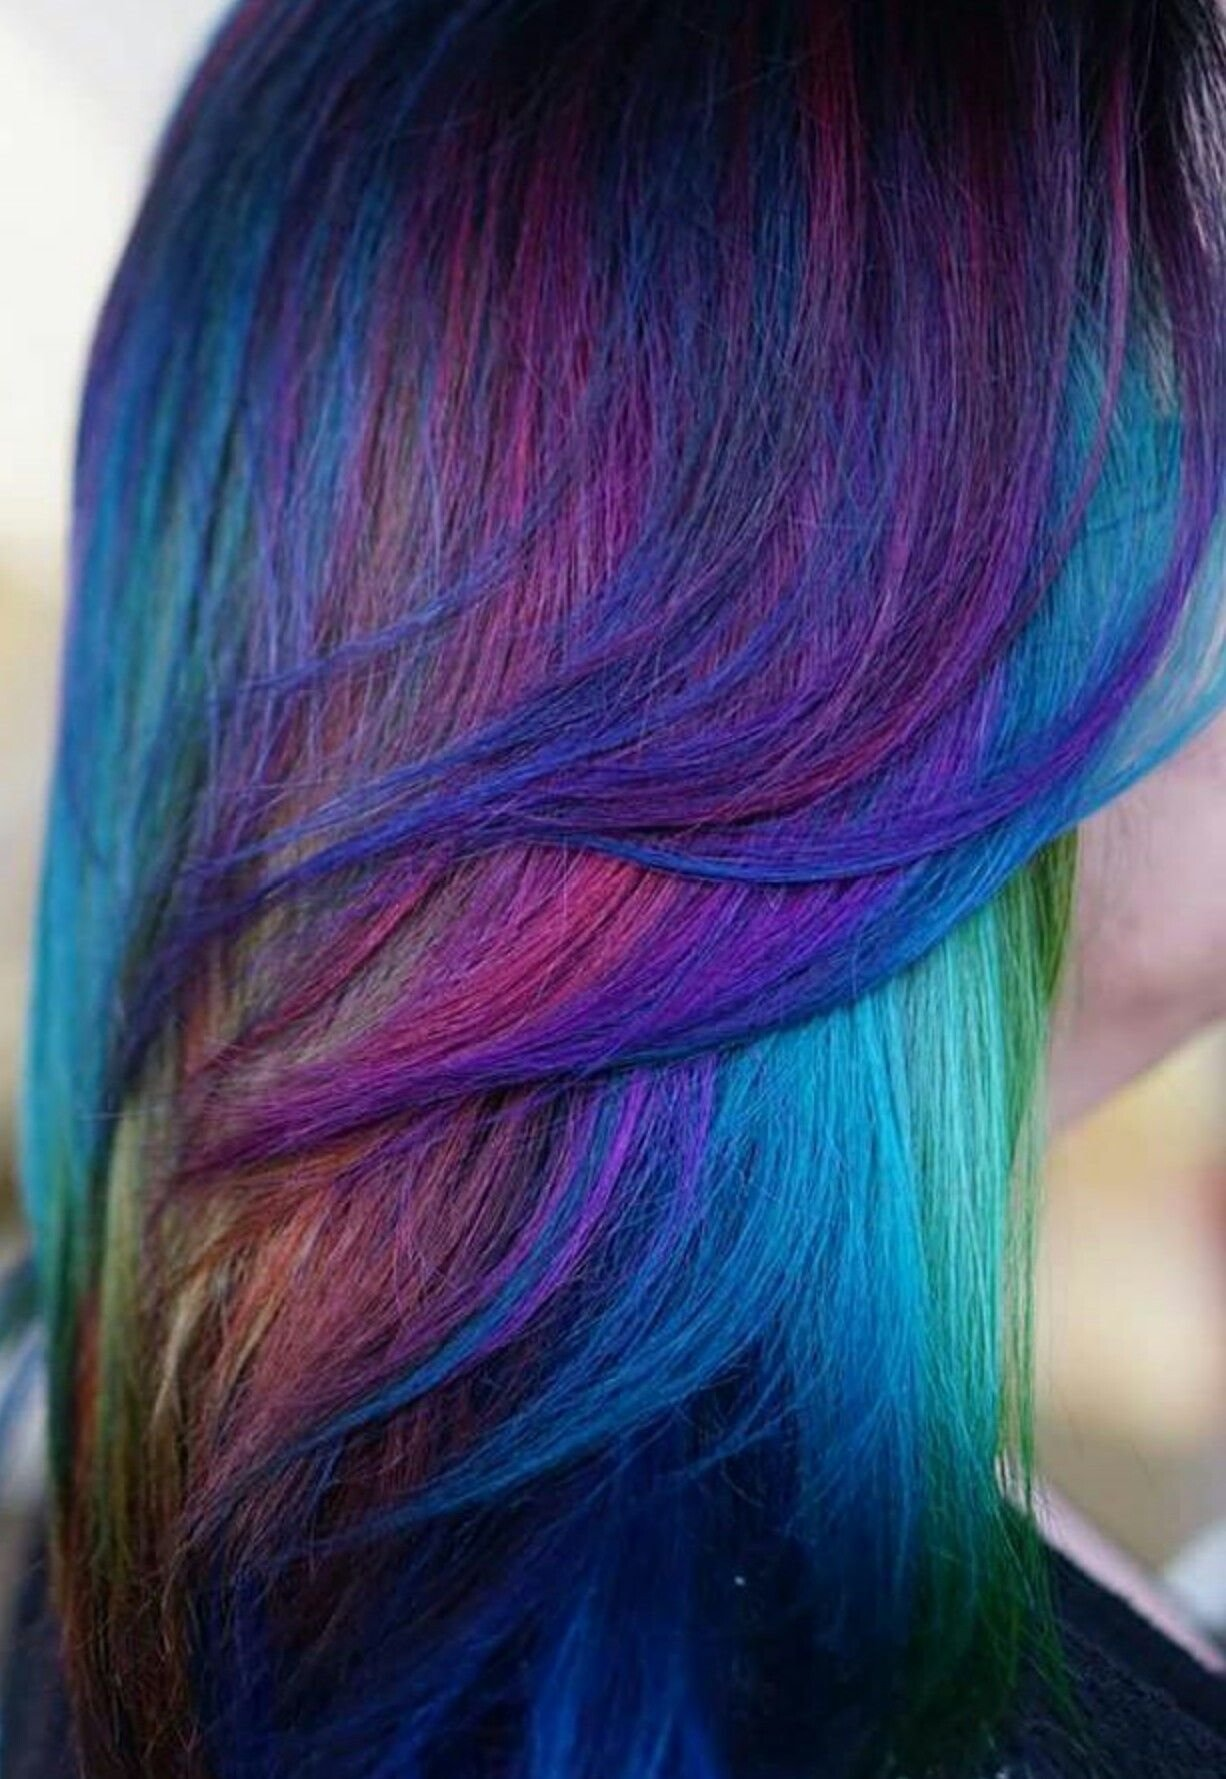 The Best Blue Mixed Multi Dyedhair Inspiration Hairspiration Alix Maya Colorful Hair Pinterest Pictures